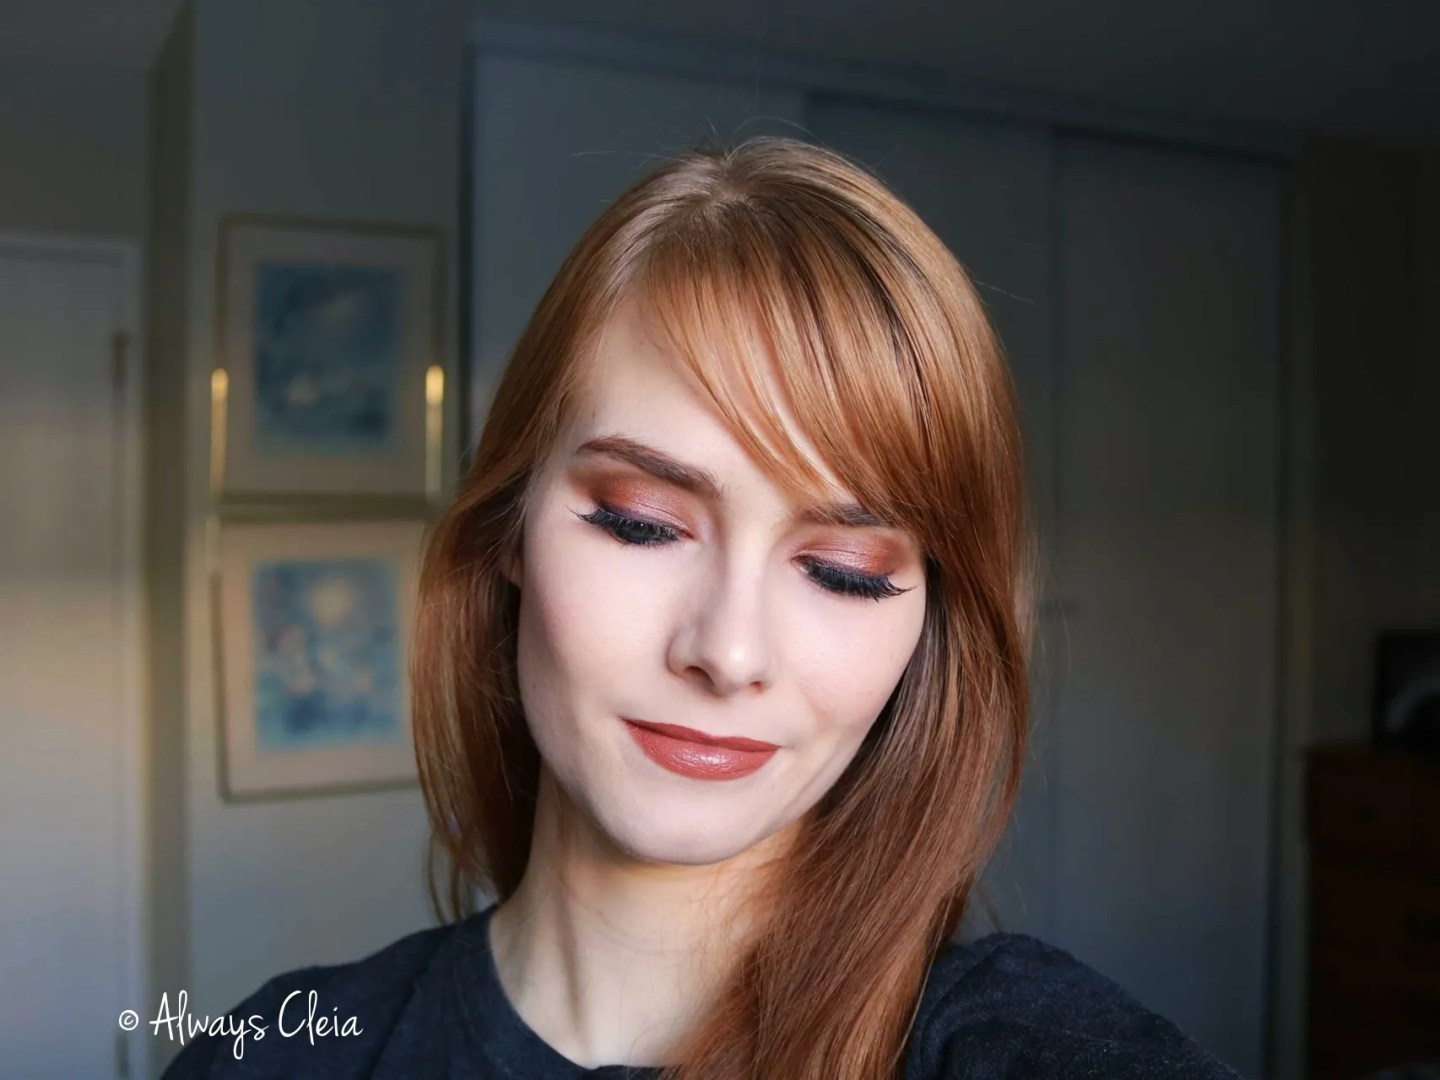 Copper Natural Beauty Makeup Look